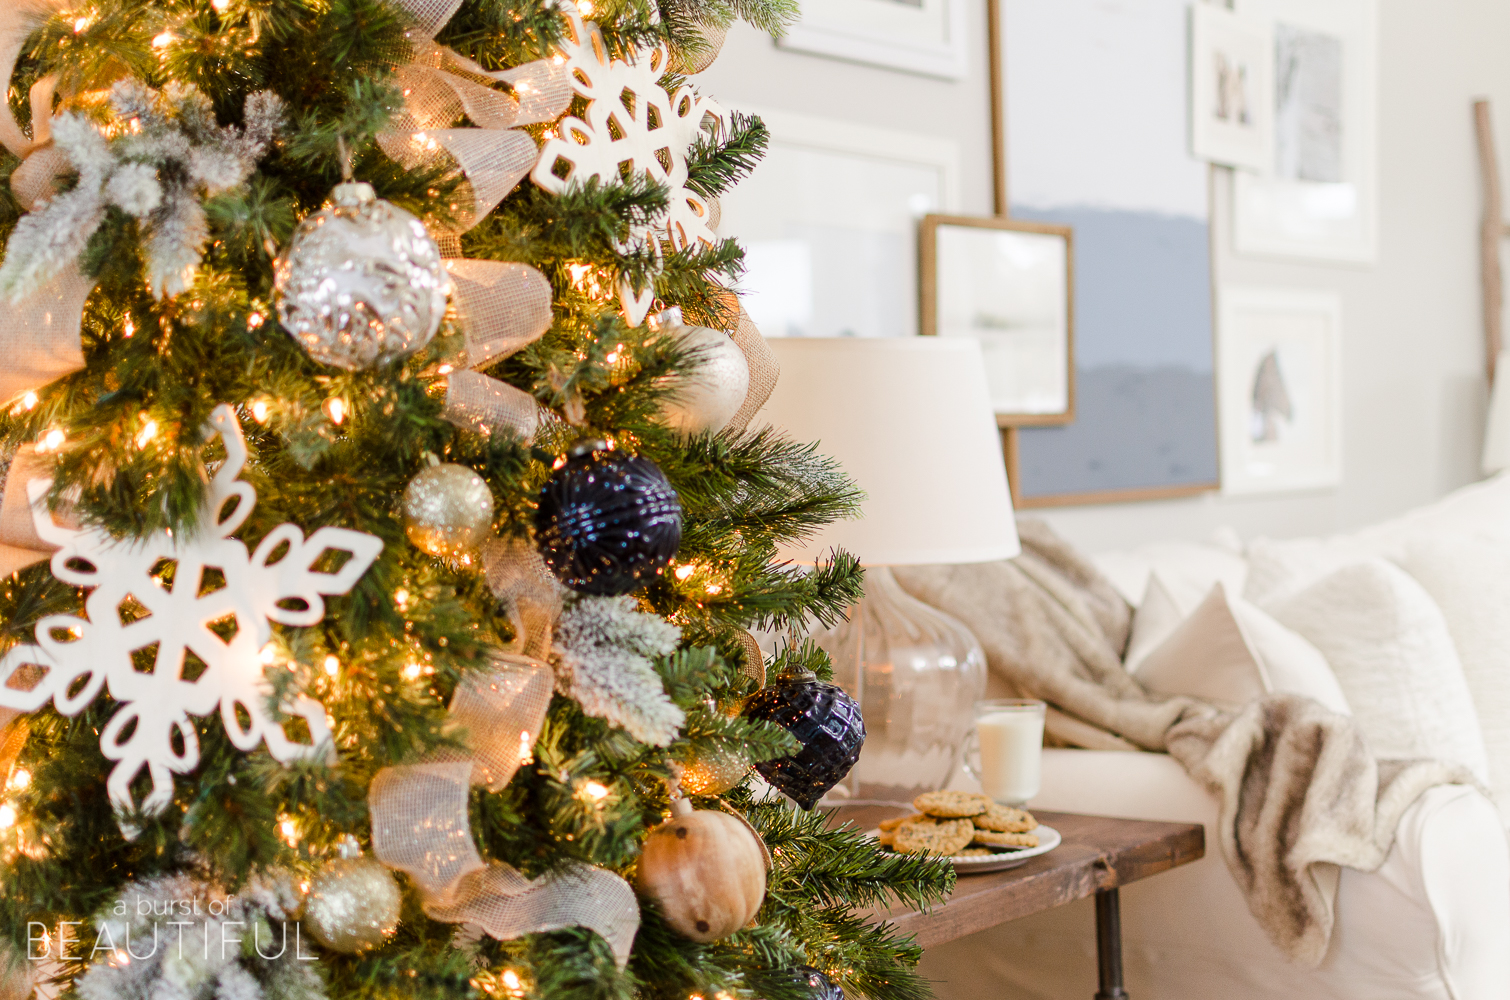 A navy and gold Christmas tree adds a touch of understated luxury to this modern farmhouse.